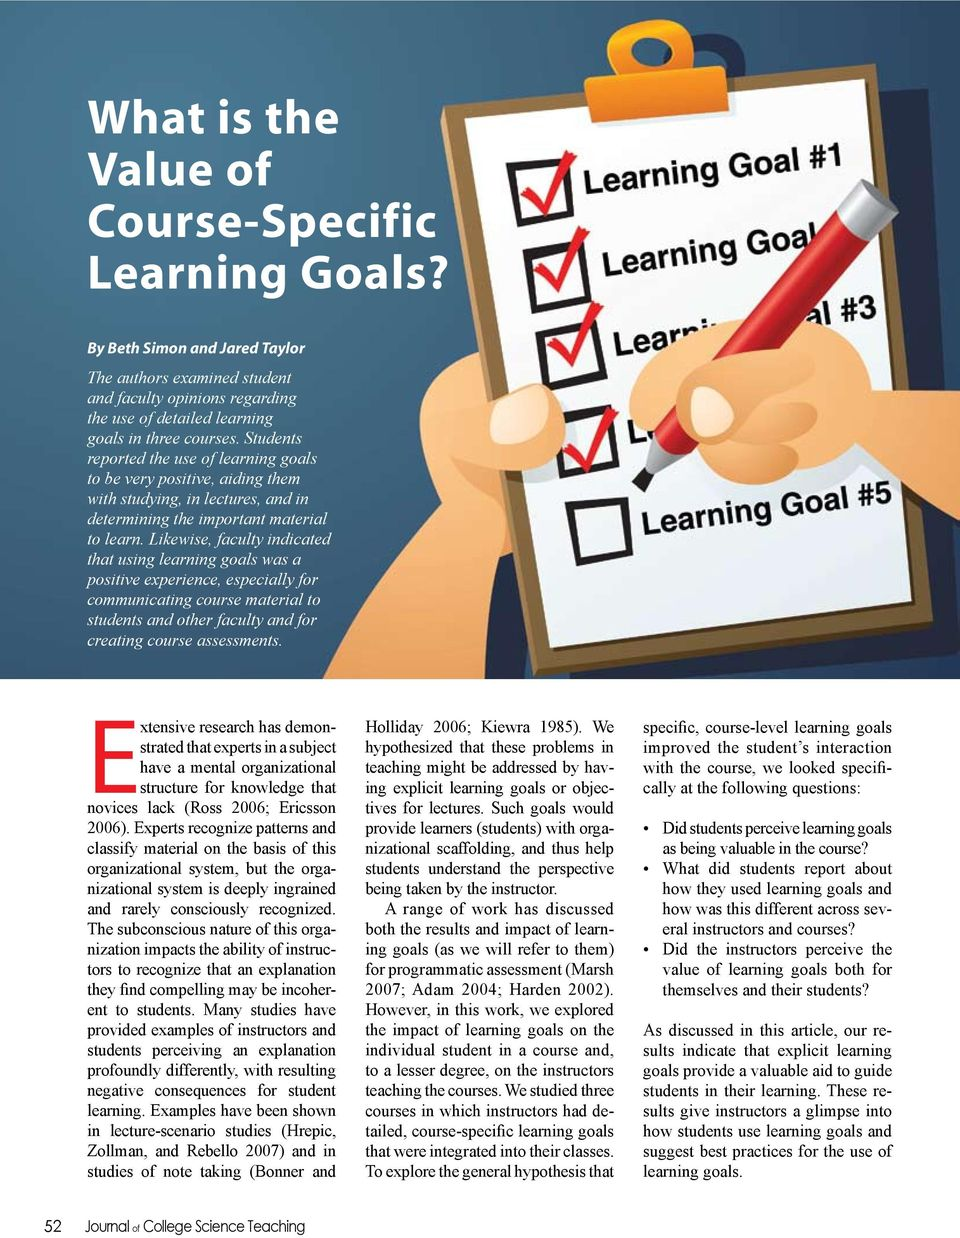 Likewise, faculty indicated that using learning goals was a positive experience, especially for communicating course material to students and other faculty and for creating course assessments.